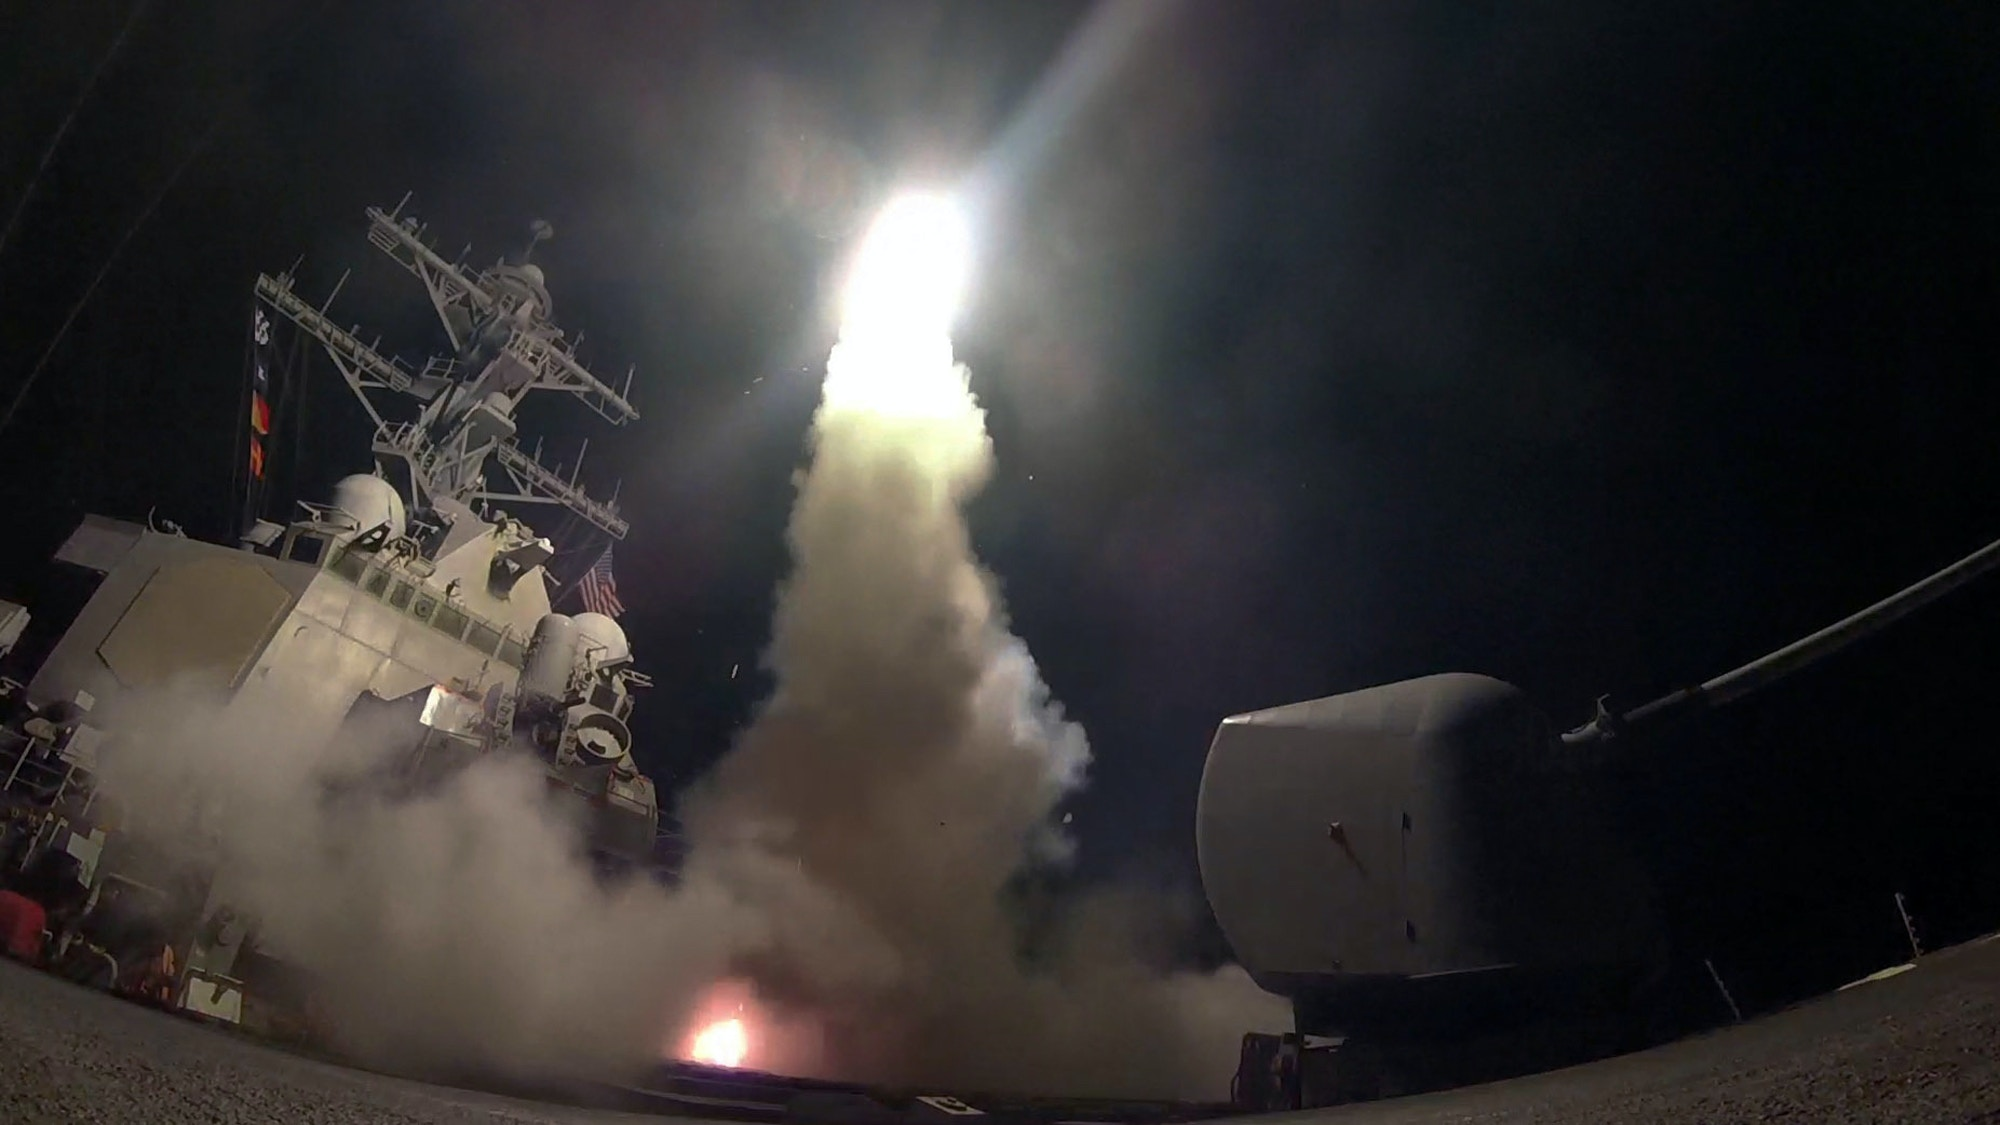 "FILE - In this Friday, April 7, 2017 file image provided by the U.S. Navy, the guided-missile destroyer USS Porter (DDG 78) launches a tomahawk land attack missile in the Mediterranean Sea as the United States blasted a Syrian air base with a barrage of cruise missiles in fiery retaliation for a gruesome chemical weapons attack against civilians earlier in the week. North Korea has vowed to bolster its defenses to protect itself against airstrikes like the ones President Donald Trump ordered against an air base in Syria. The North called the airstrikes ""absolutely unpardonable"" and said it proves that its nuclear weapons are justified to protect the country against Washington's ""evermore reckless moves for a war."" (Mass Communication Specialist 3rd Class Ford Williams/U.S. Navy via AP, File)"